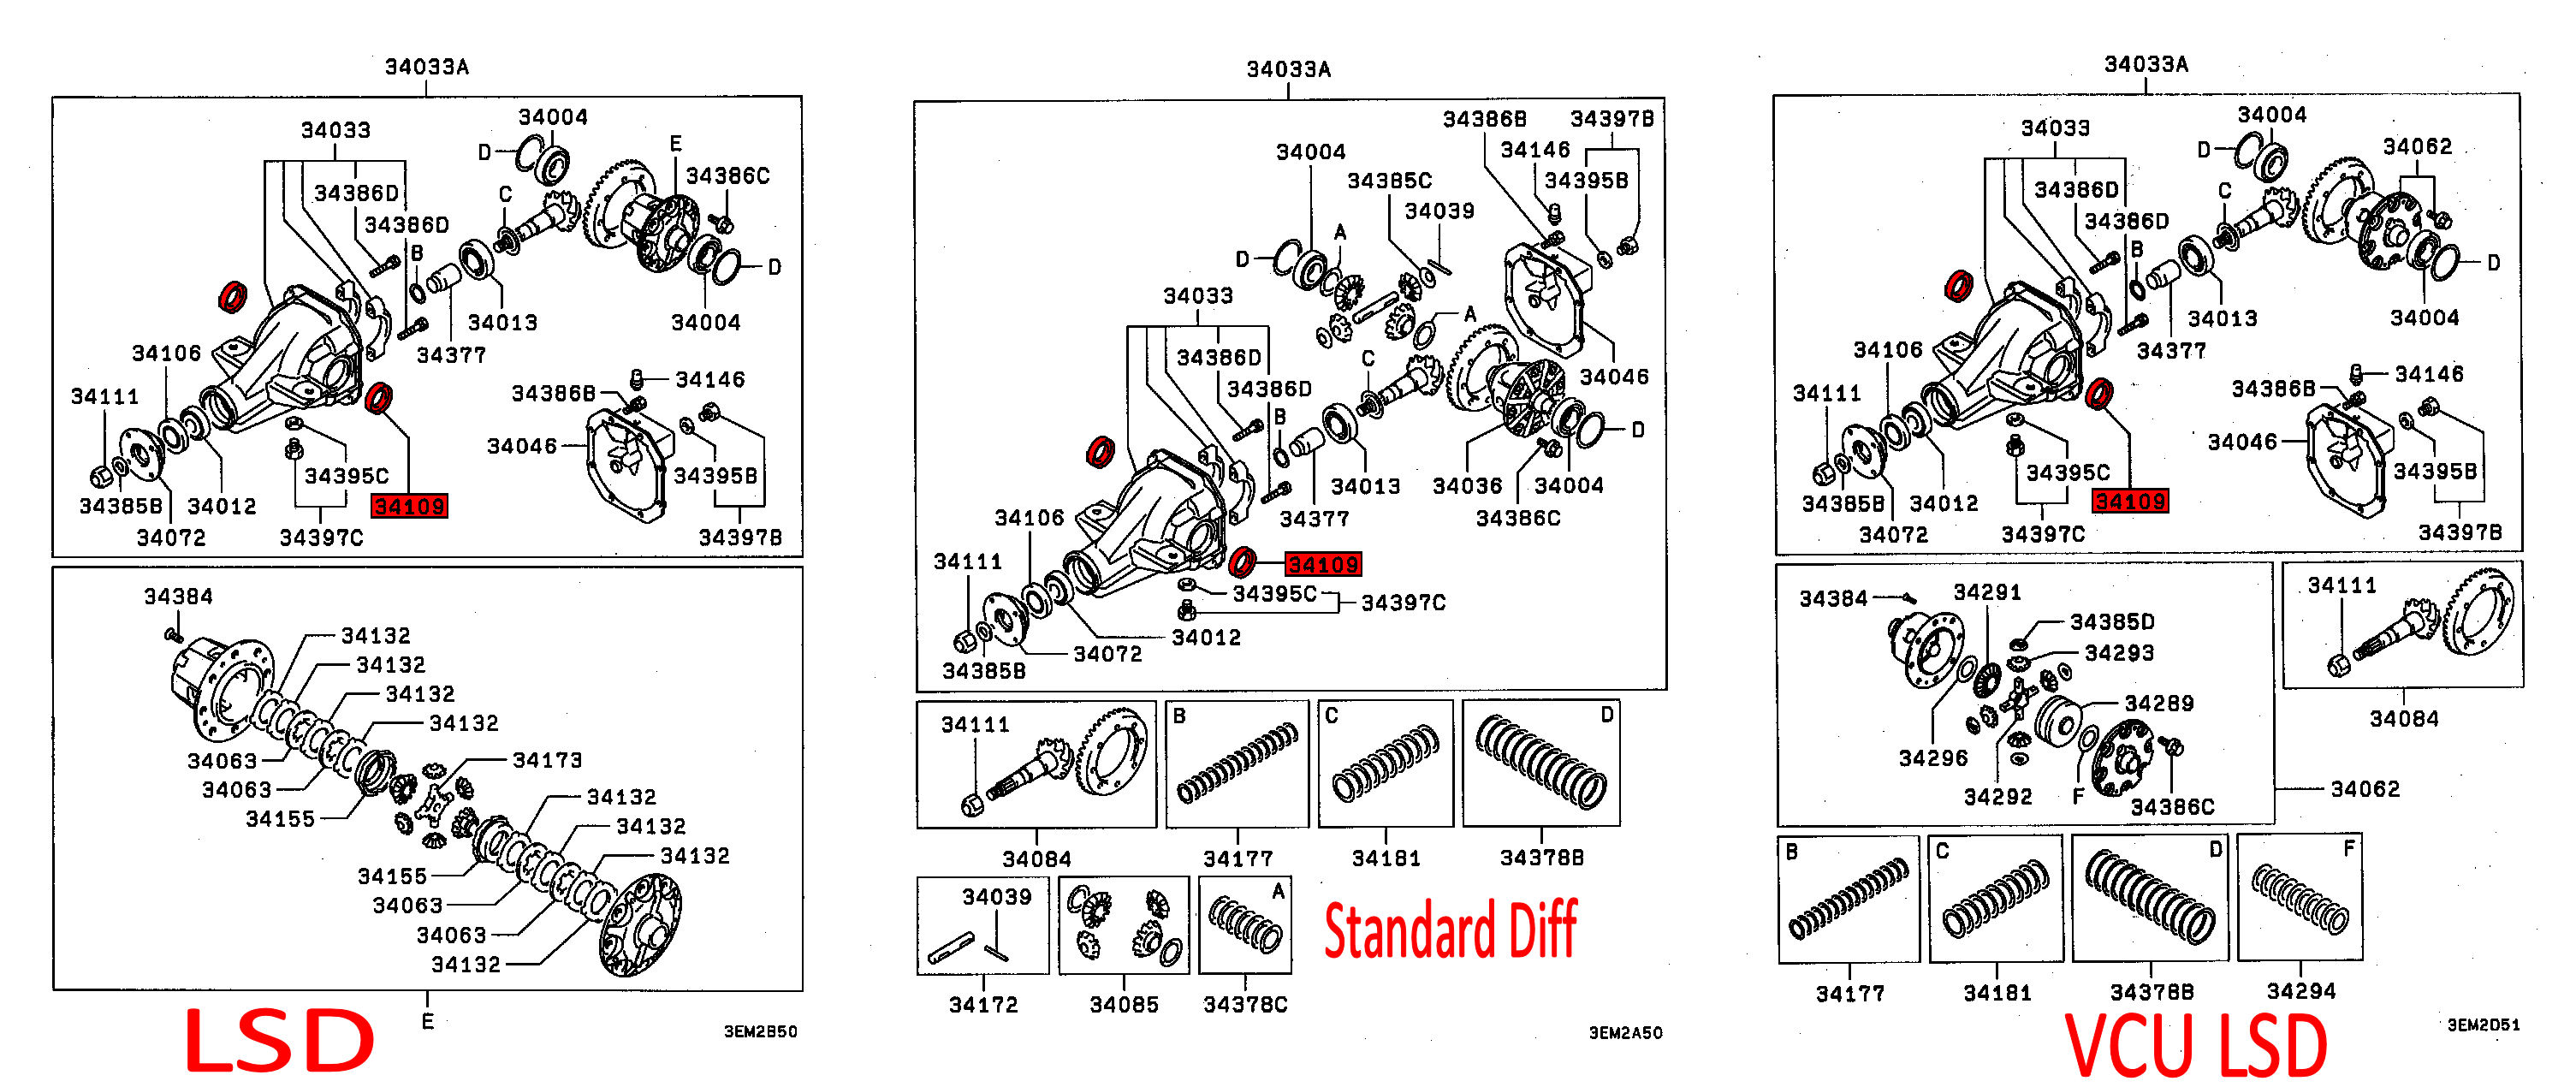 Mitsubishi Gsr Wiring Diagram Diagrams Evo 9 4 Fuse Box Imageresizertool Com 6 8